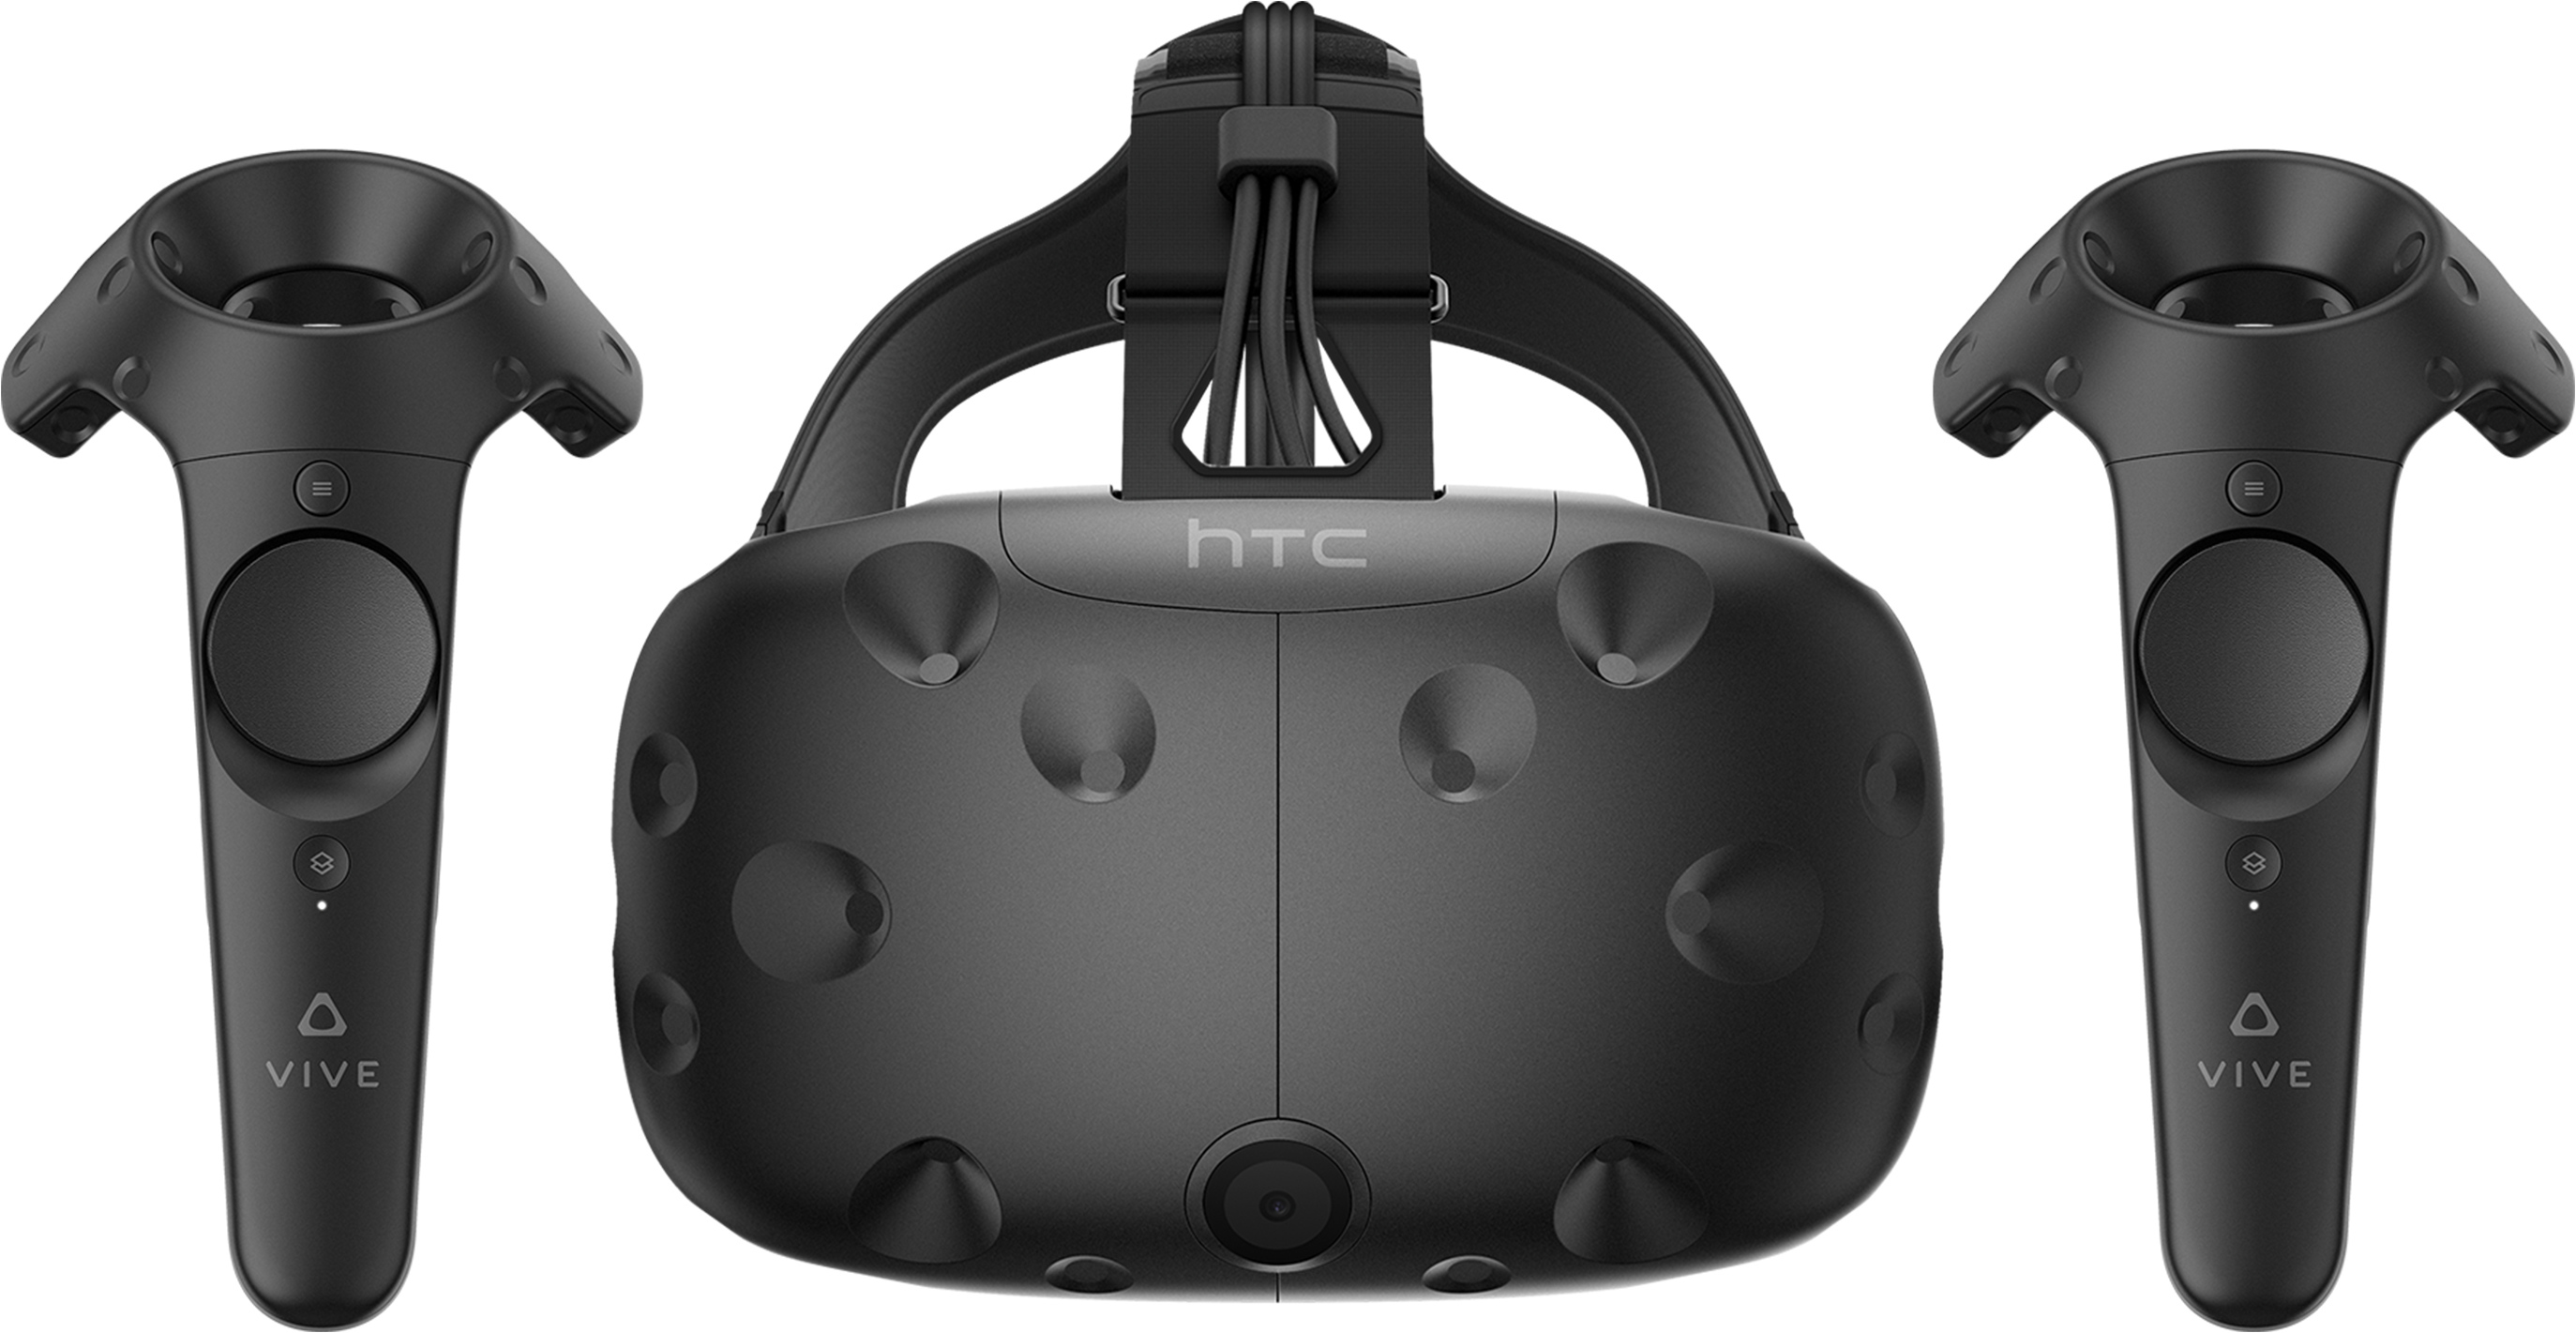 HTC VIVE Virtual Reality System Left View